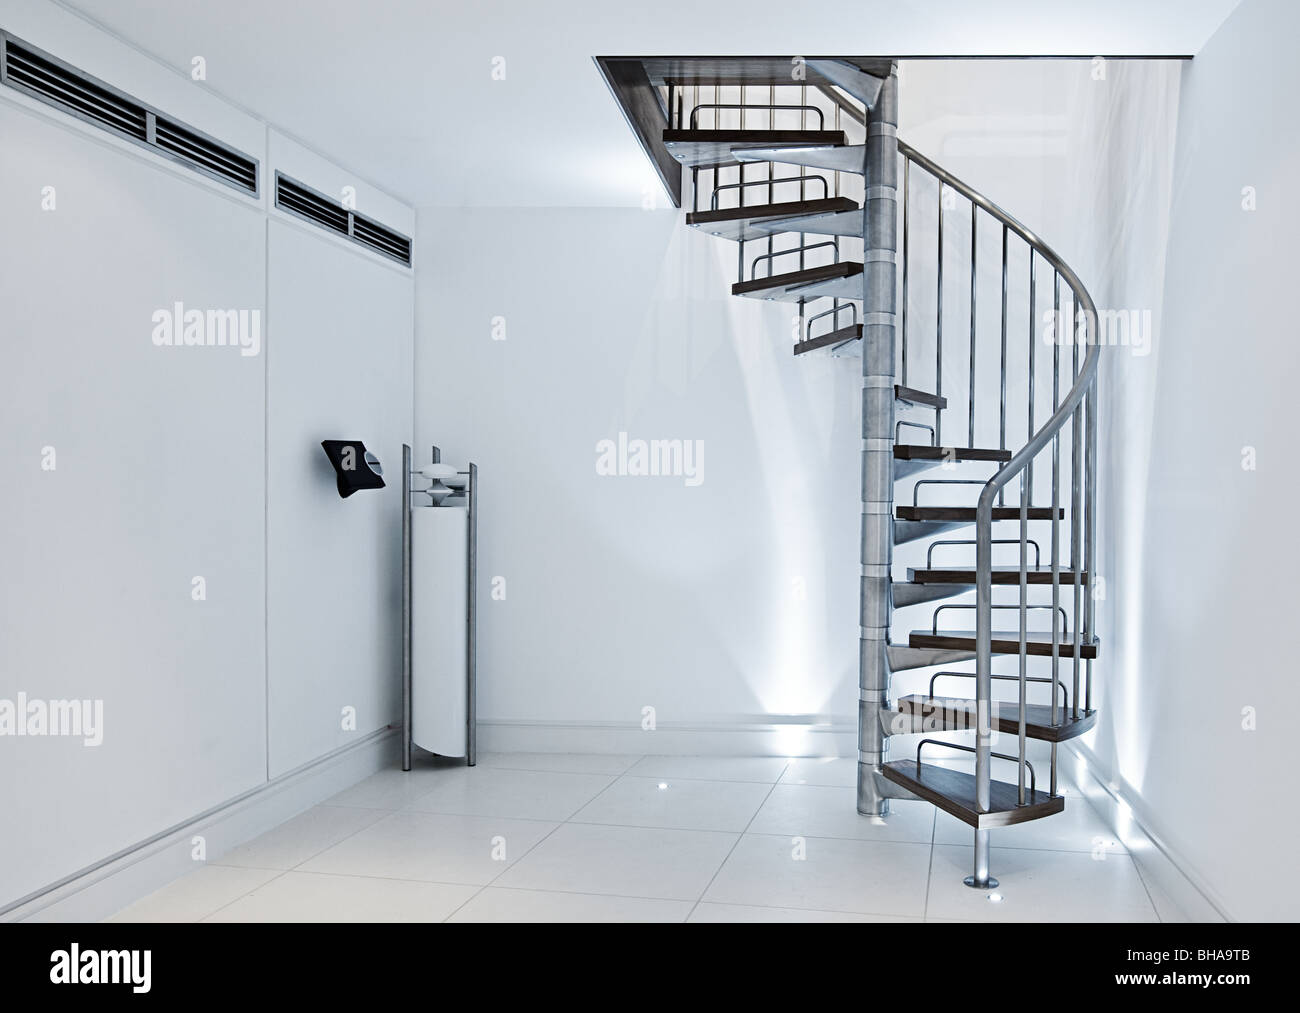 Minimalistic Interior - Spiral Staircase against White Walls - Stock Image